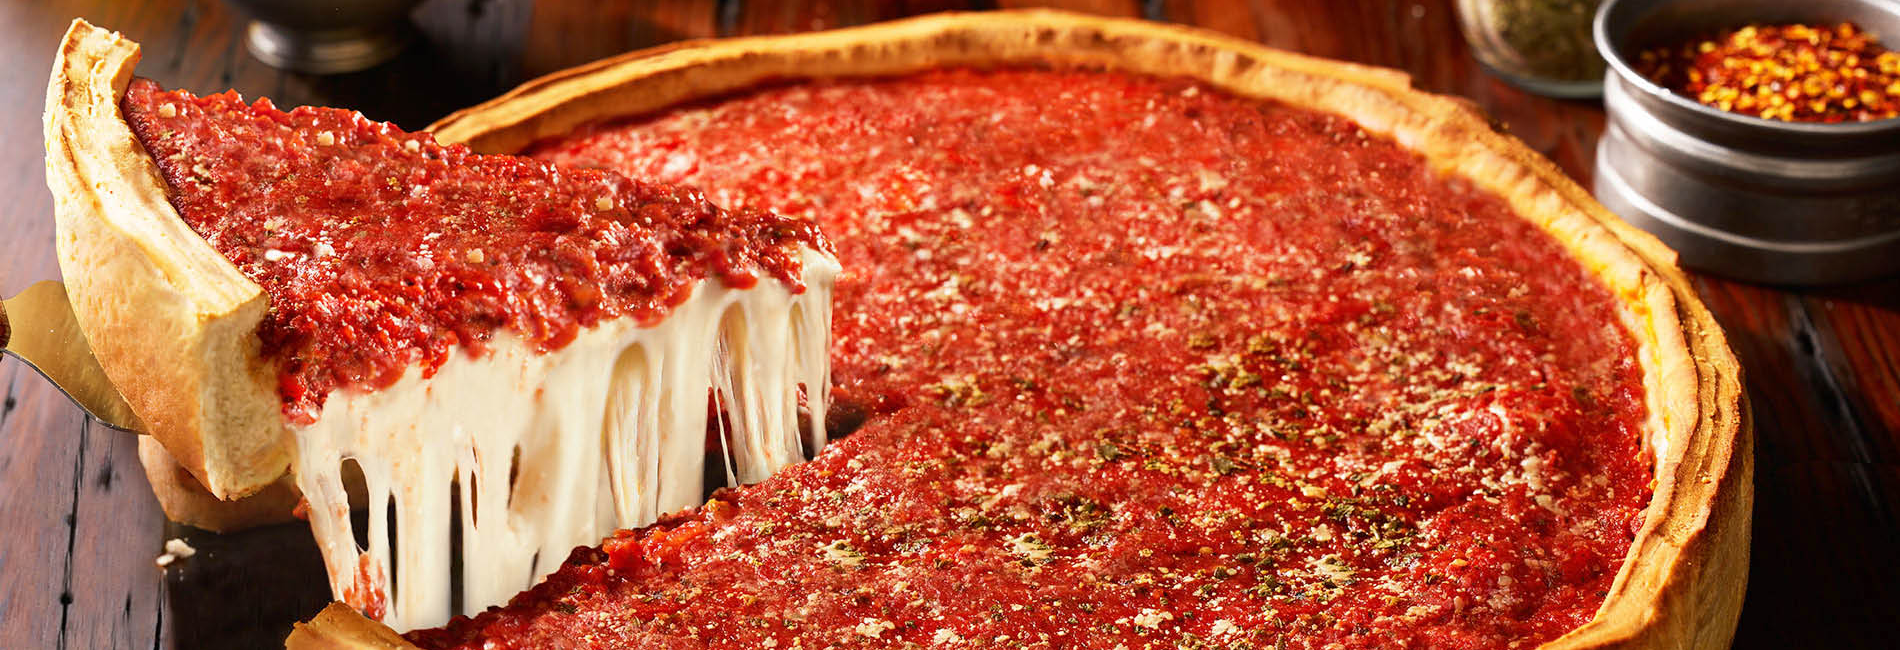 Chicago Stuffed Pizza Thin-crust Salads Sandwiches Classic Italian Meat Vegetables